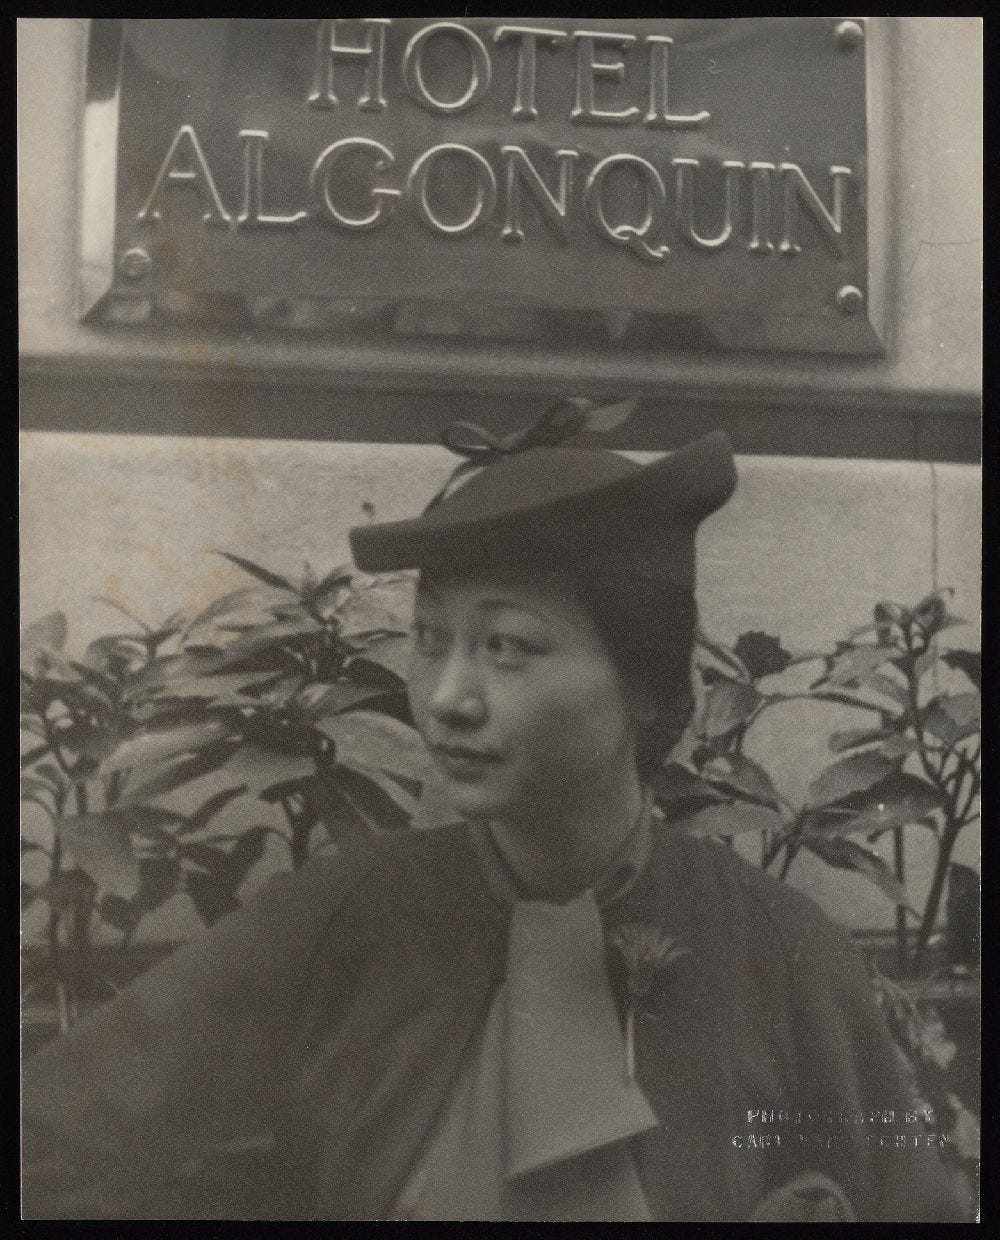 Anna May Wong looking spiffy in her hat, scarf, and a fresh flower pinned to her coat at the Algonquin Hotel, where she often stayed on trips to New York City.